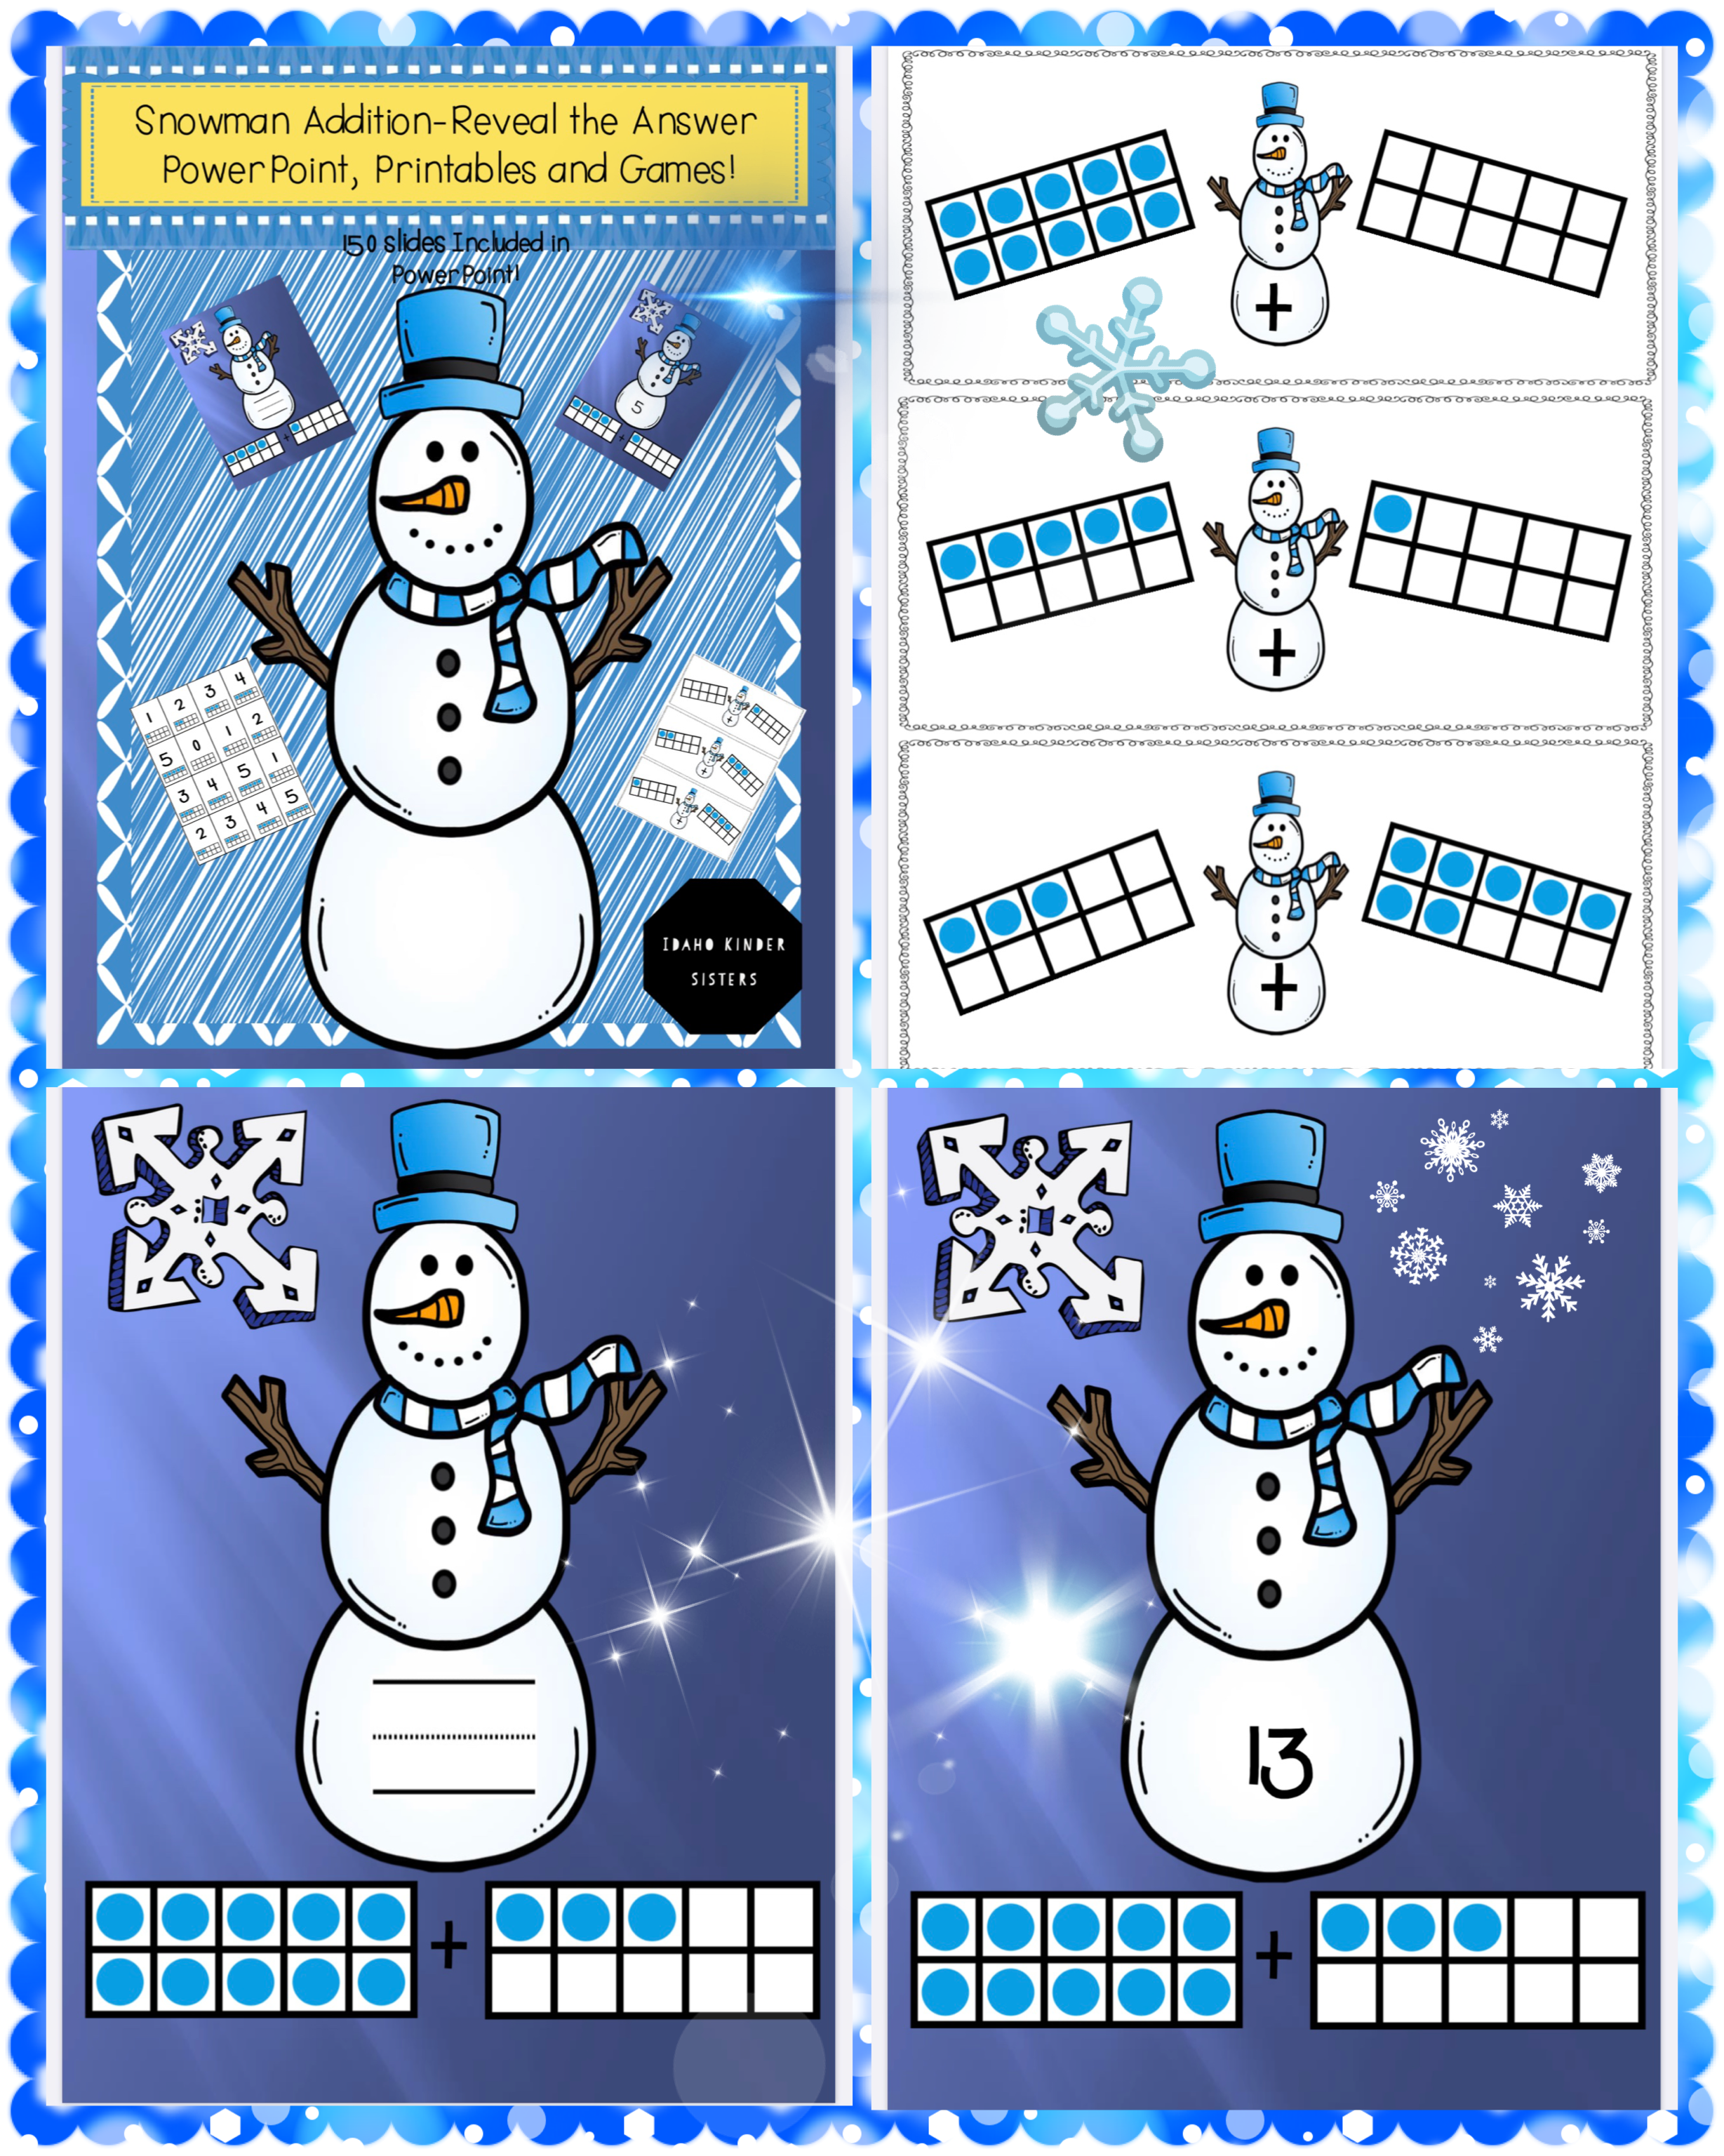 Snowman Addition Powerpoint Printable S And Games In